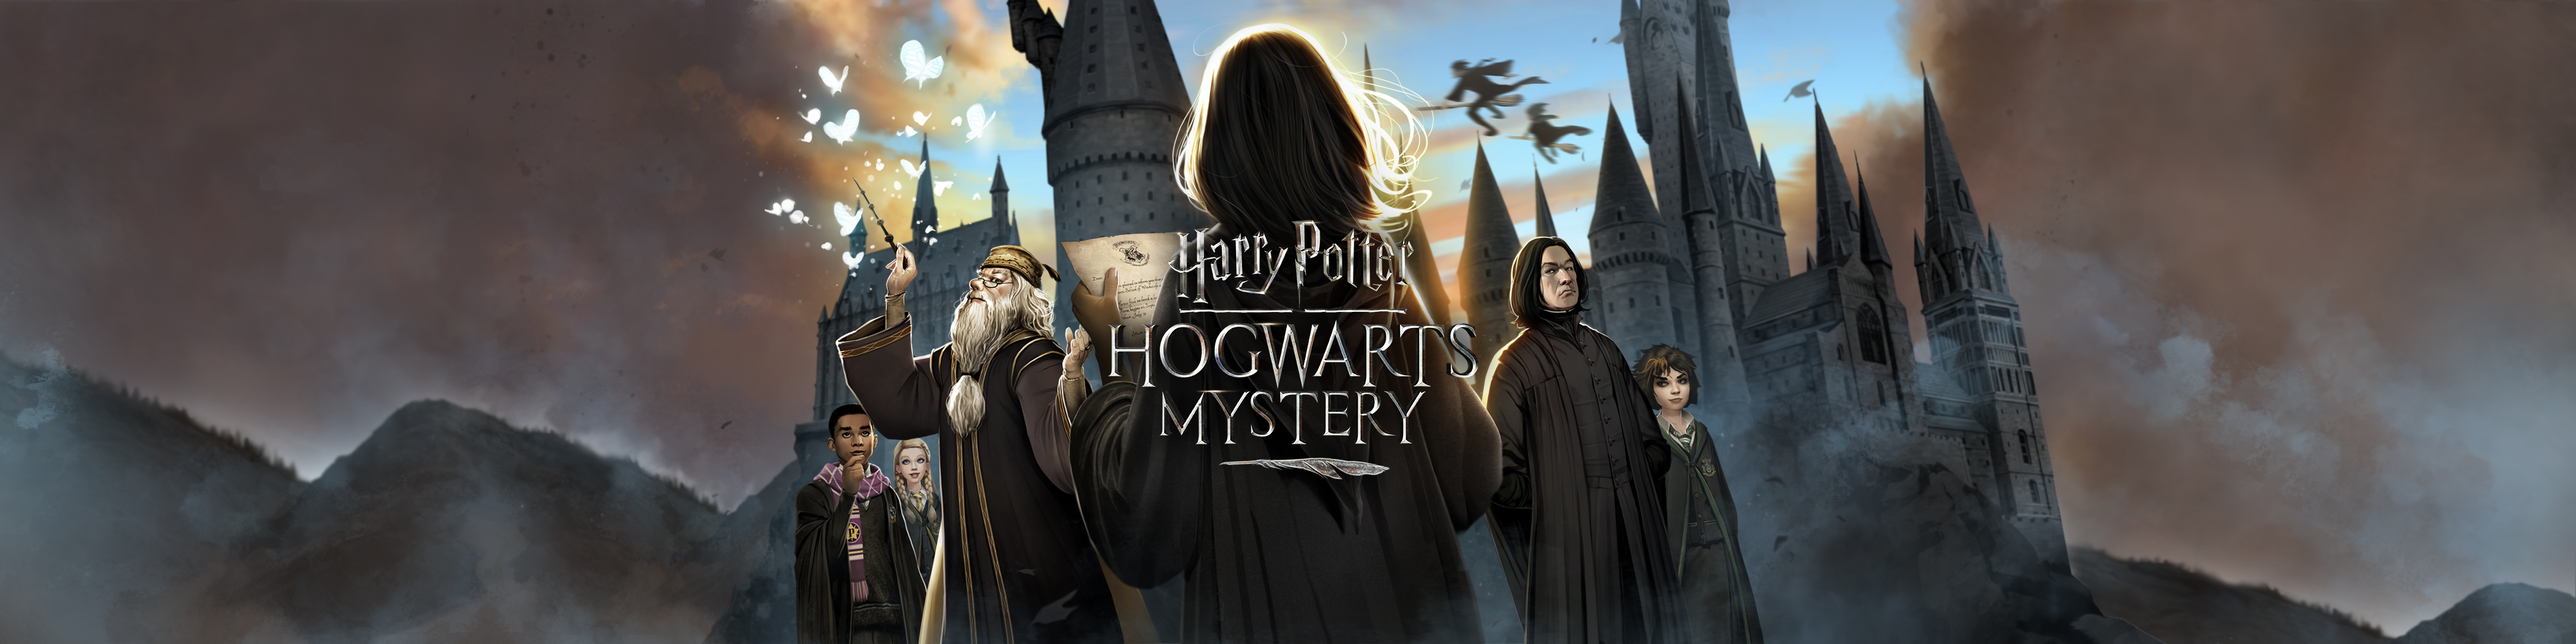 come scaricare harry potter hogwarts mystery